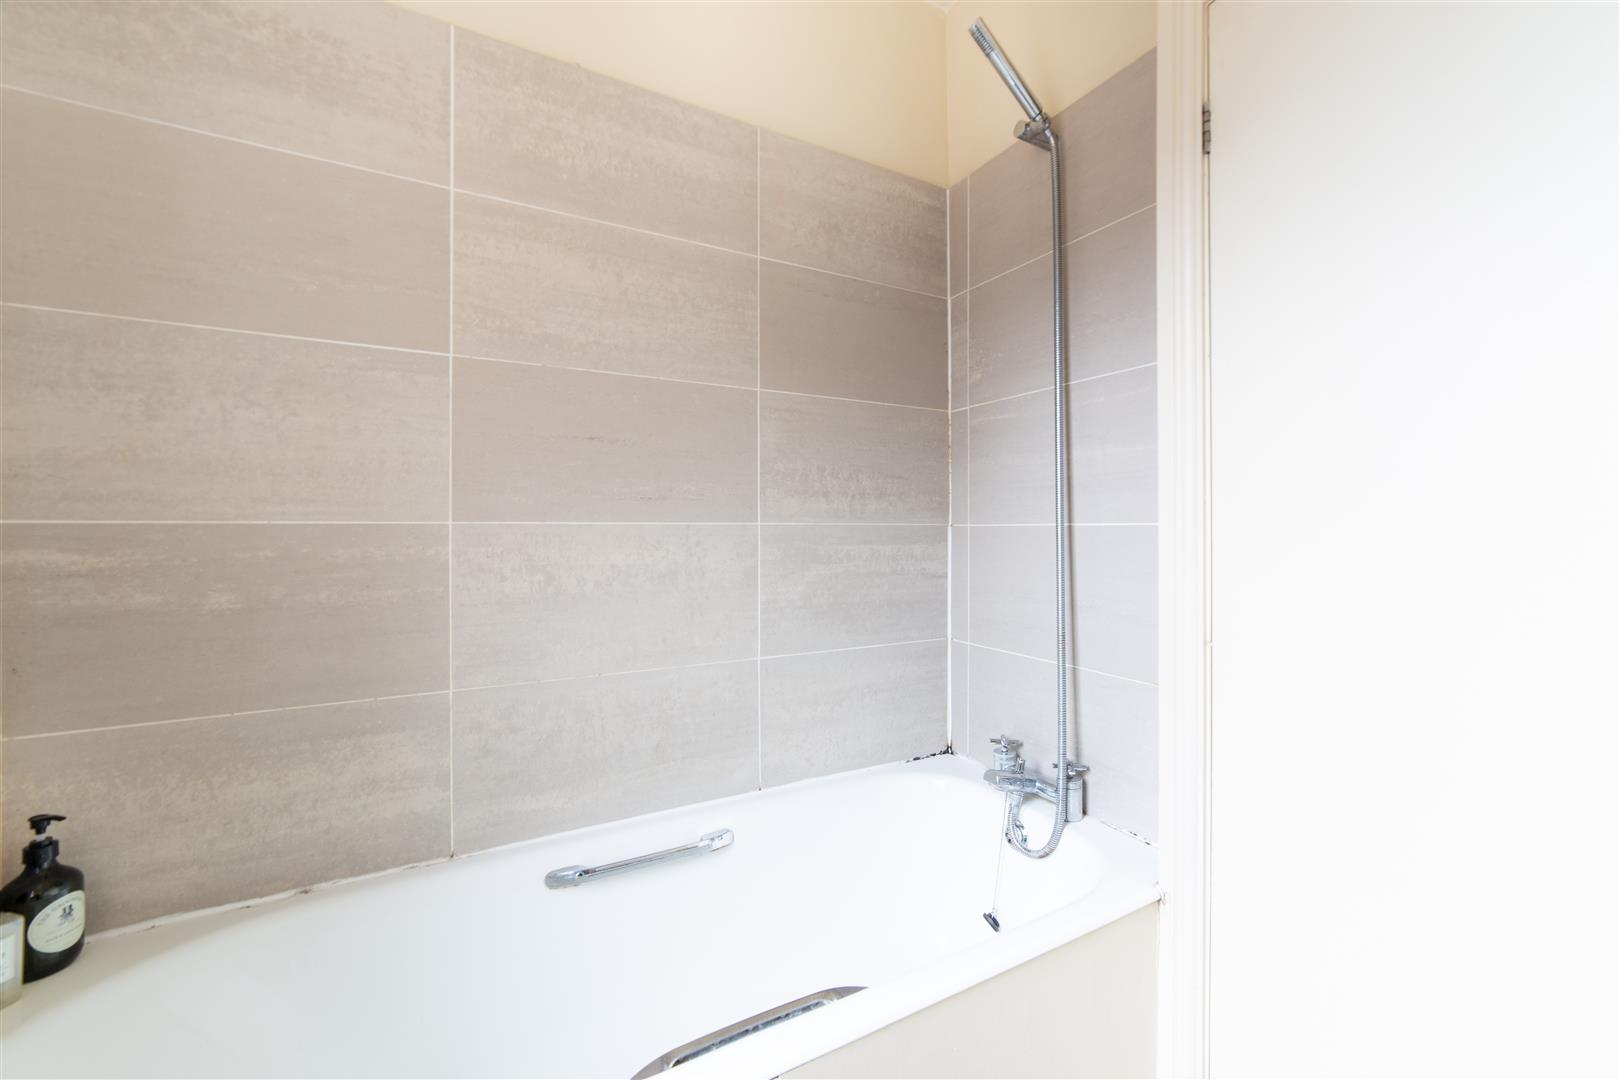 4 bed terraced house to rent in Newcastle Upon Tyne, NE6 5NU  - Property Image 12